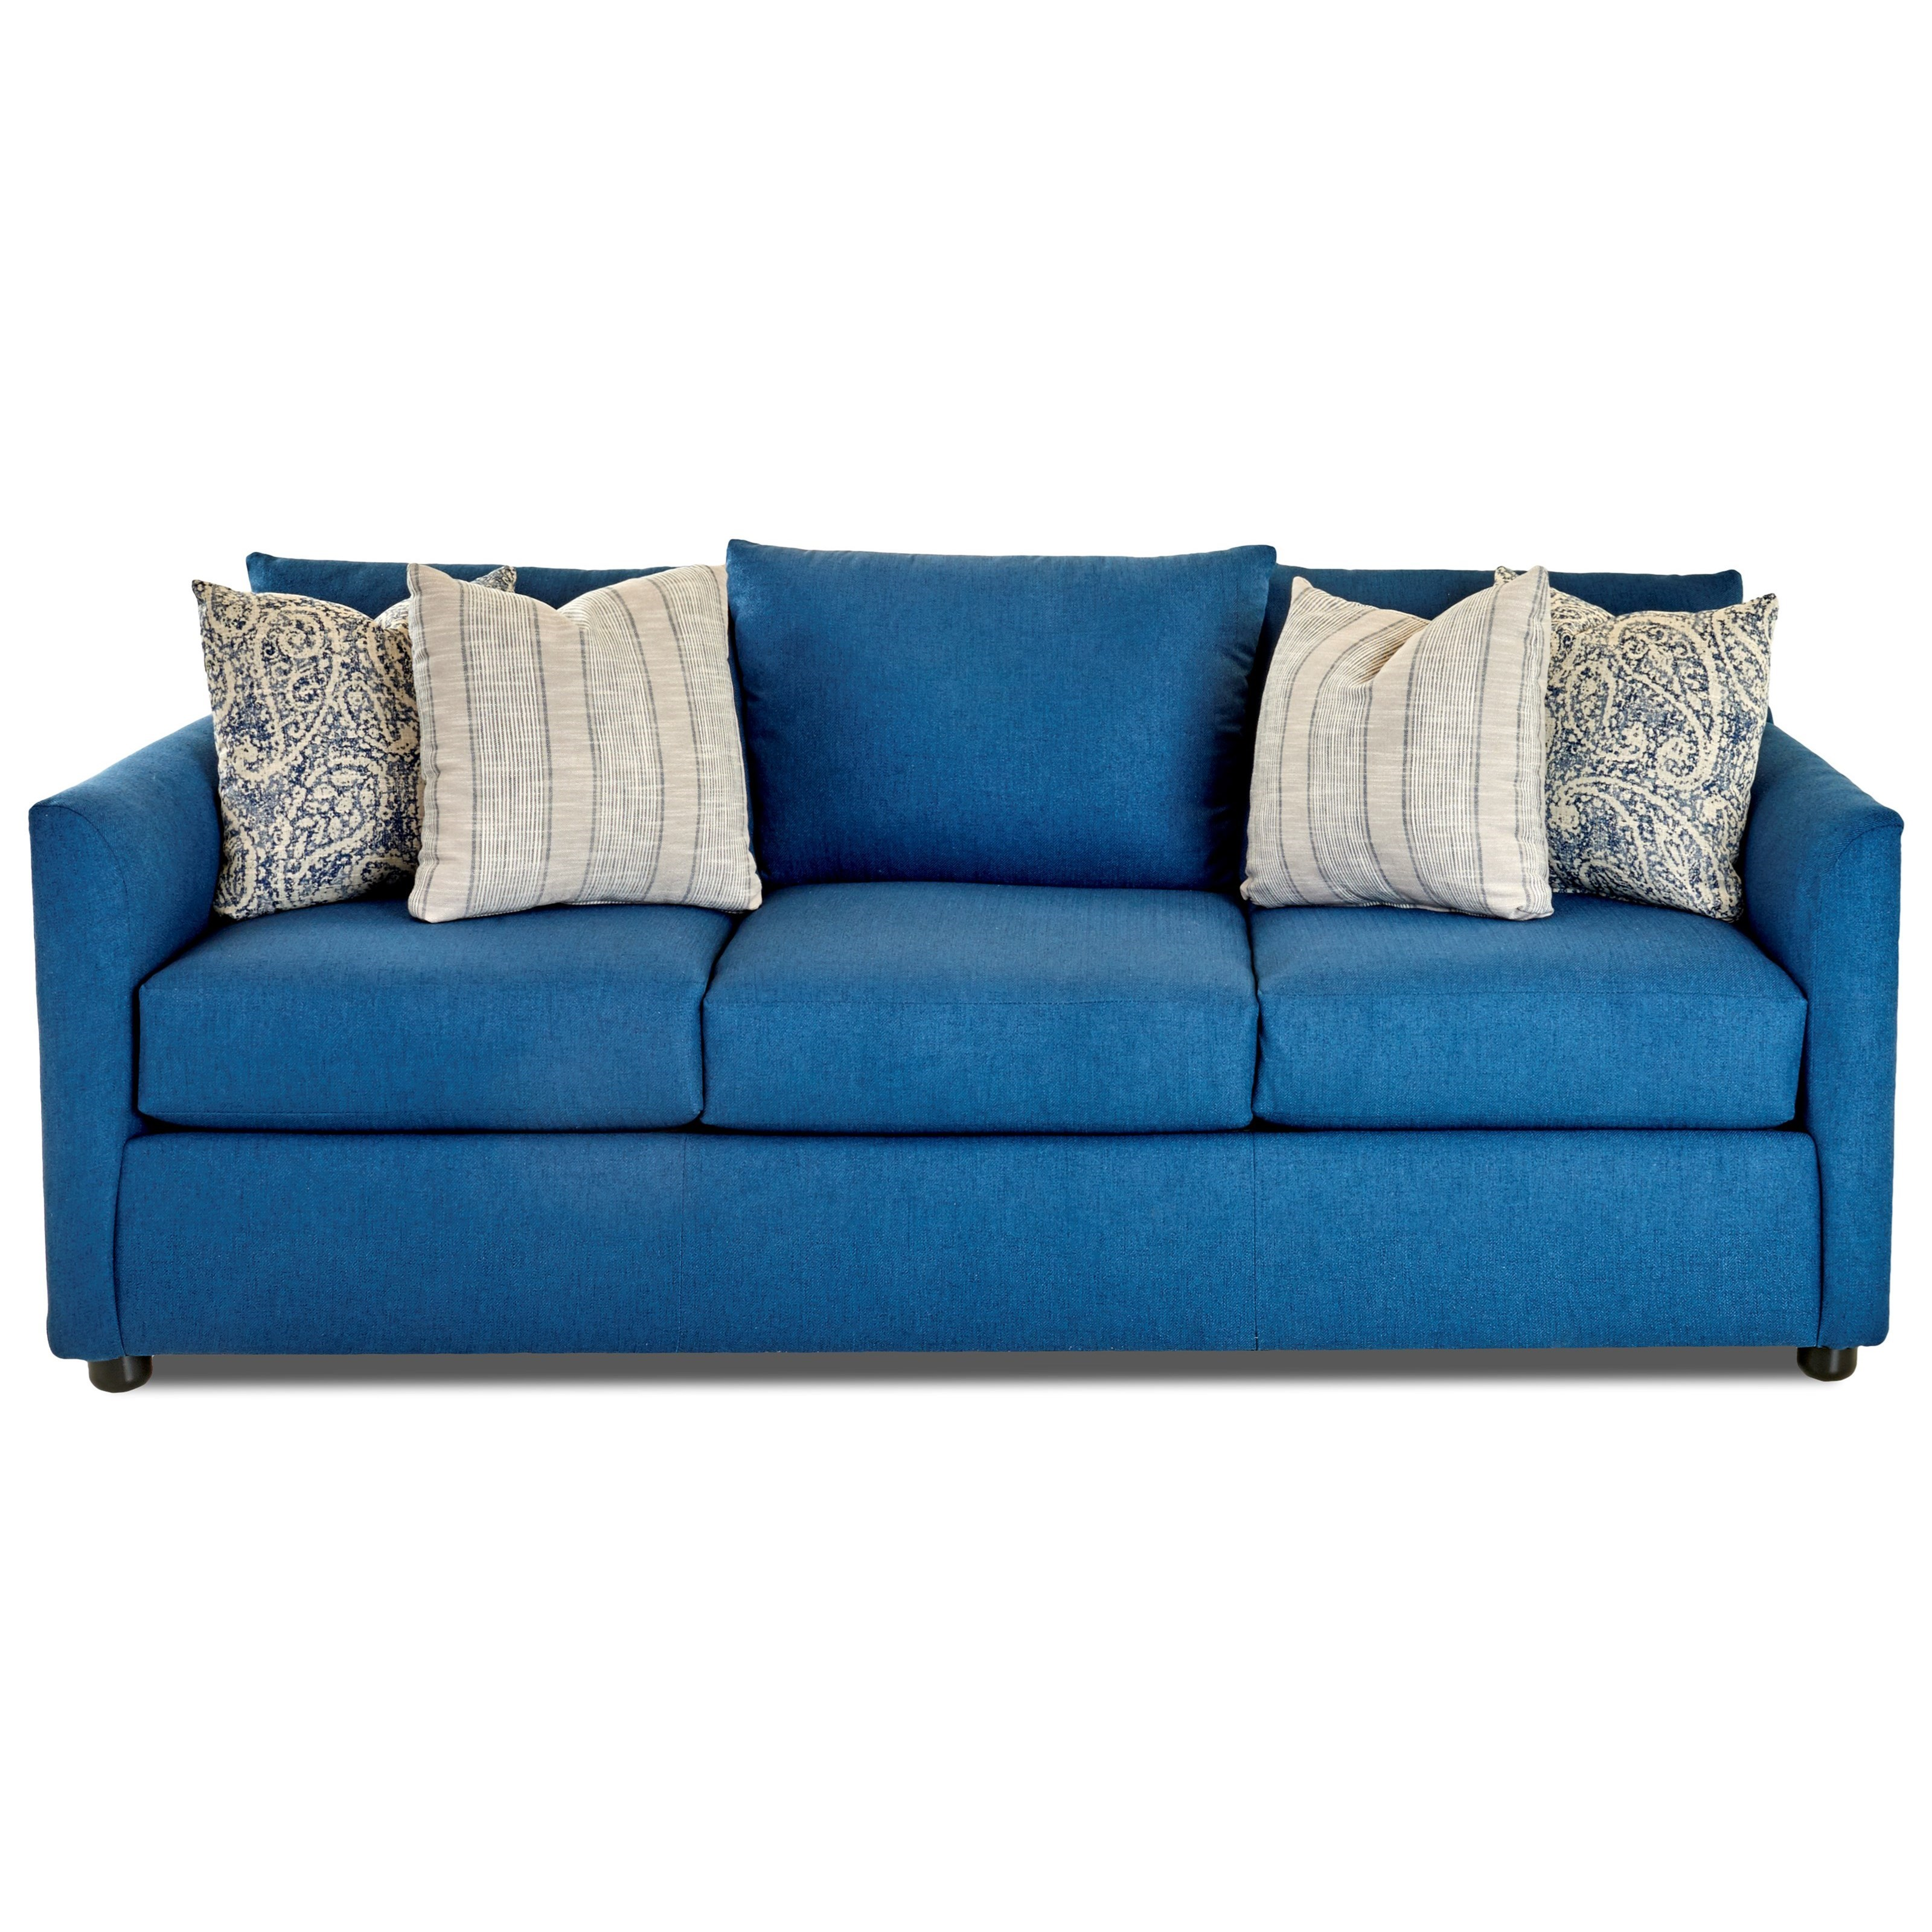 sofas in atlanta lips sofa singapore trisha yearwood home collection by klaussner transitional with tuxedo arms